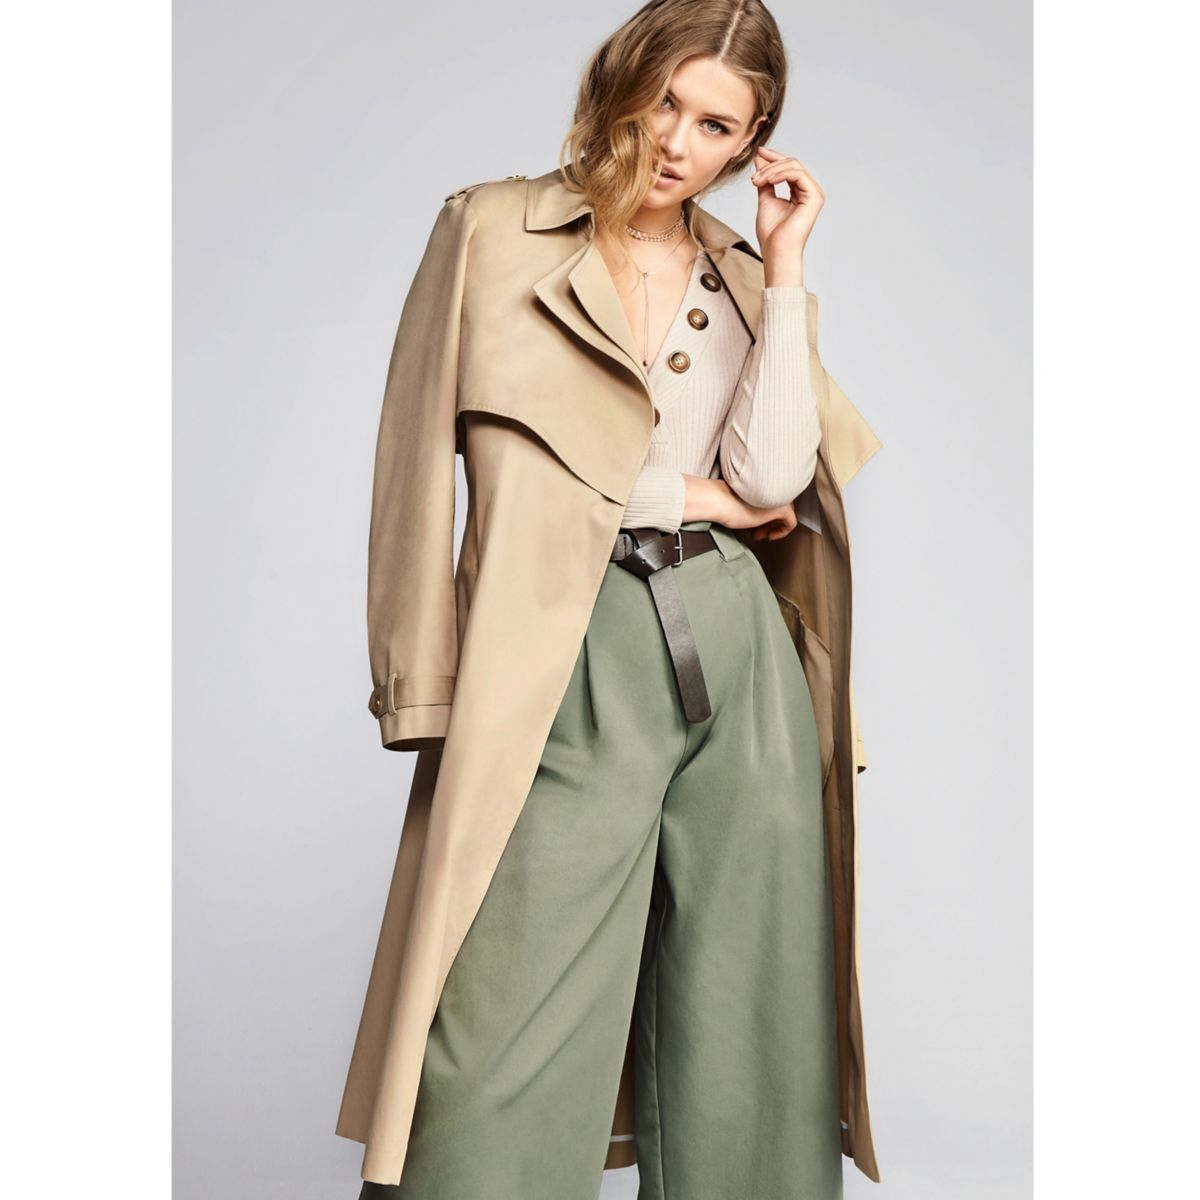 Camel Double Collar Long Trench Coat Coats Amp Jackets